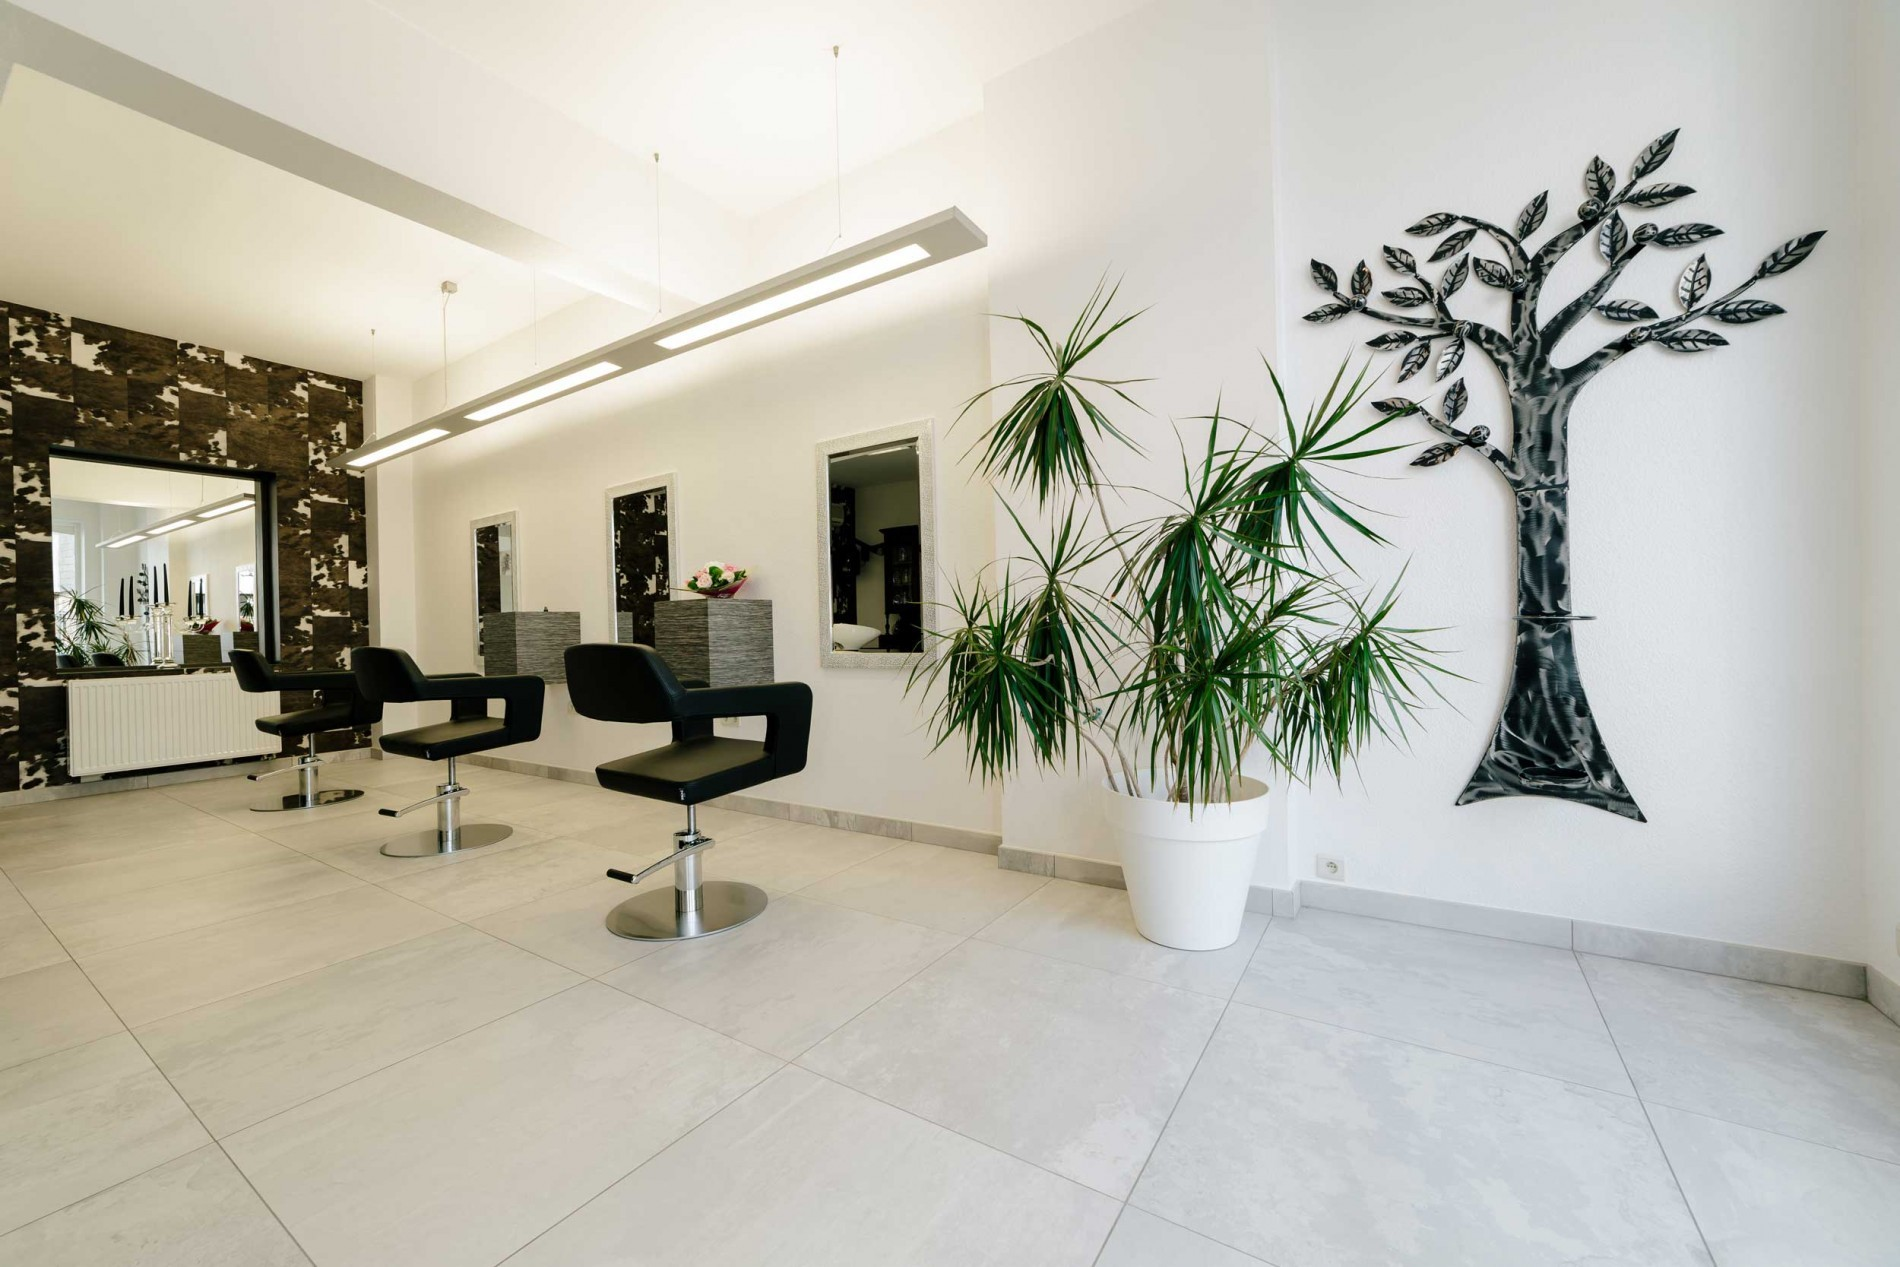 La Reference Coiffure salon